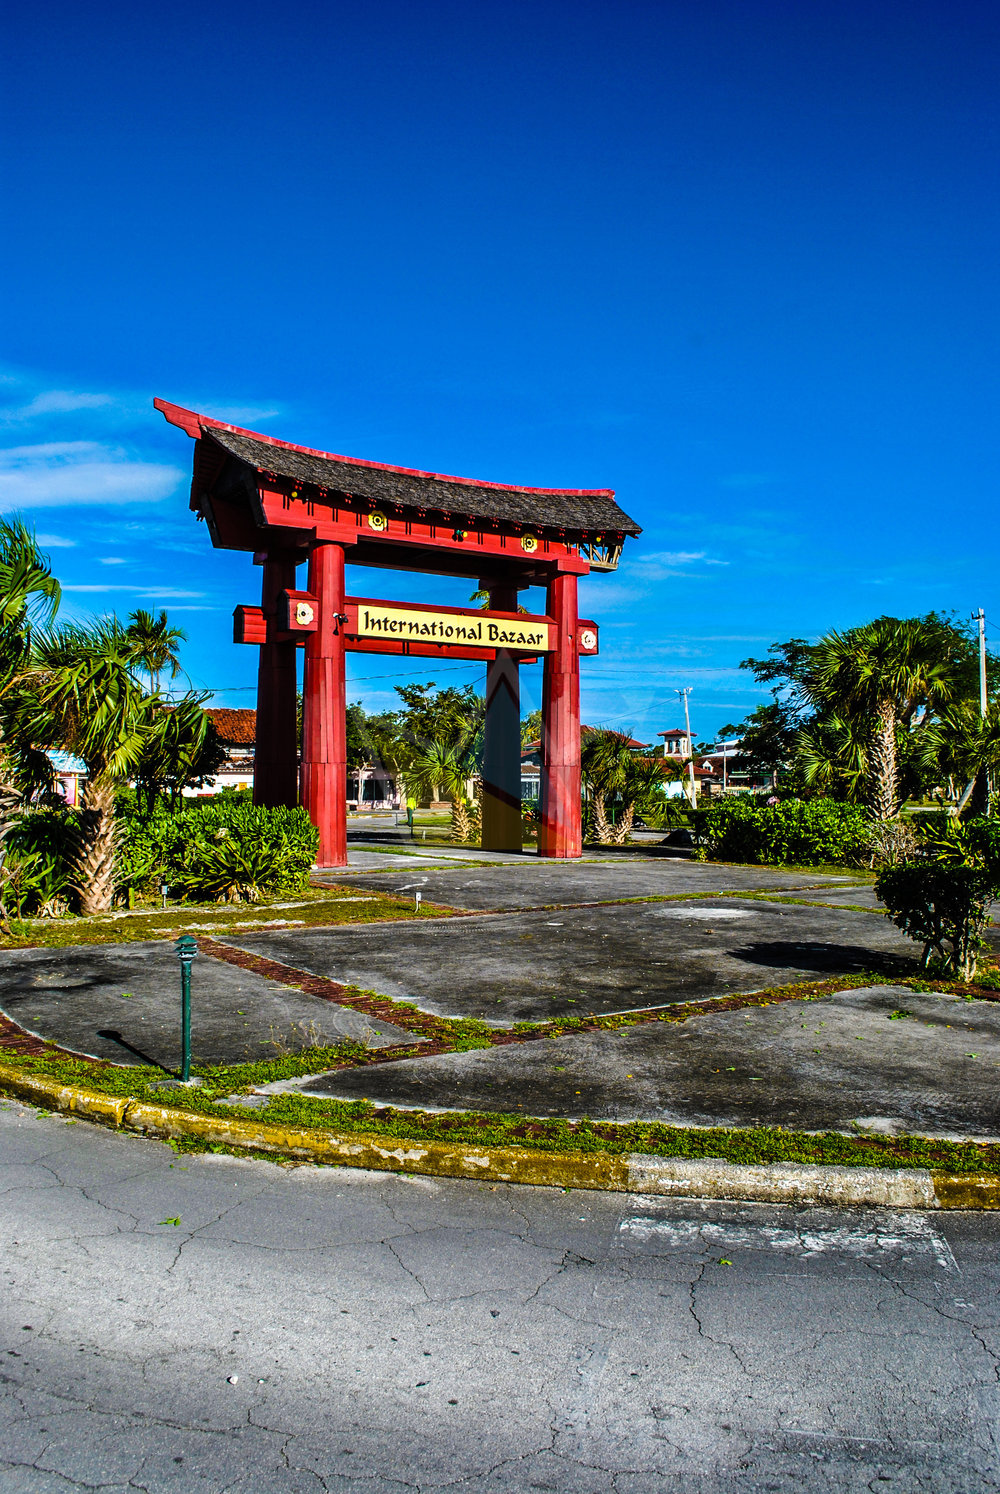 Torii Gate at The International Bazaar